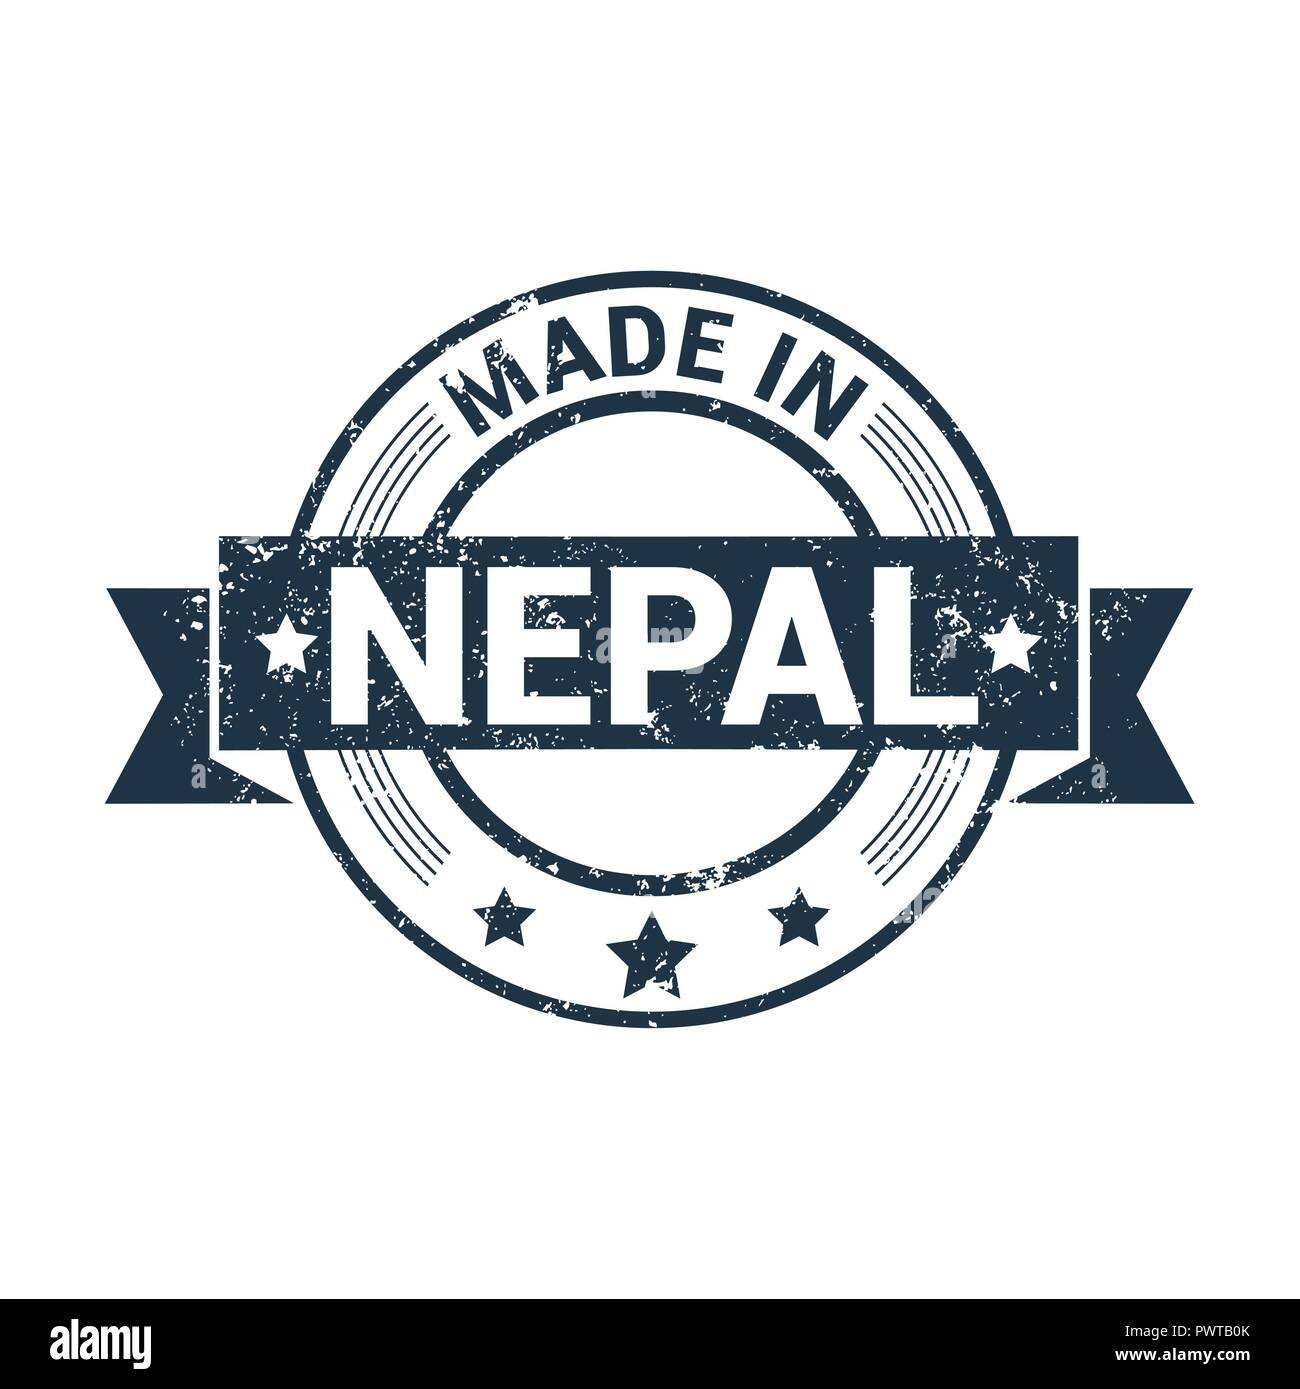 Nepal Vector Stock Vector Images   Page 8   Alamy